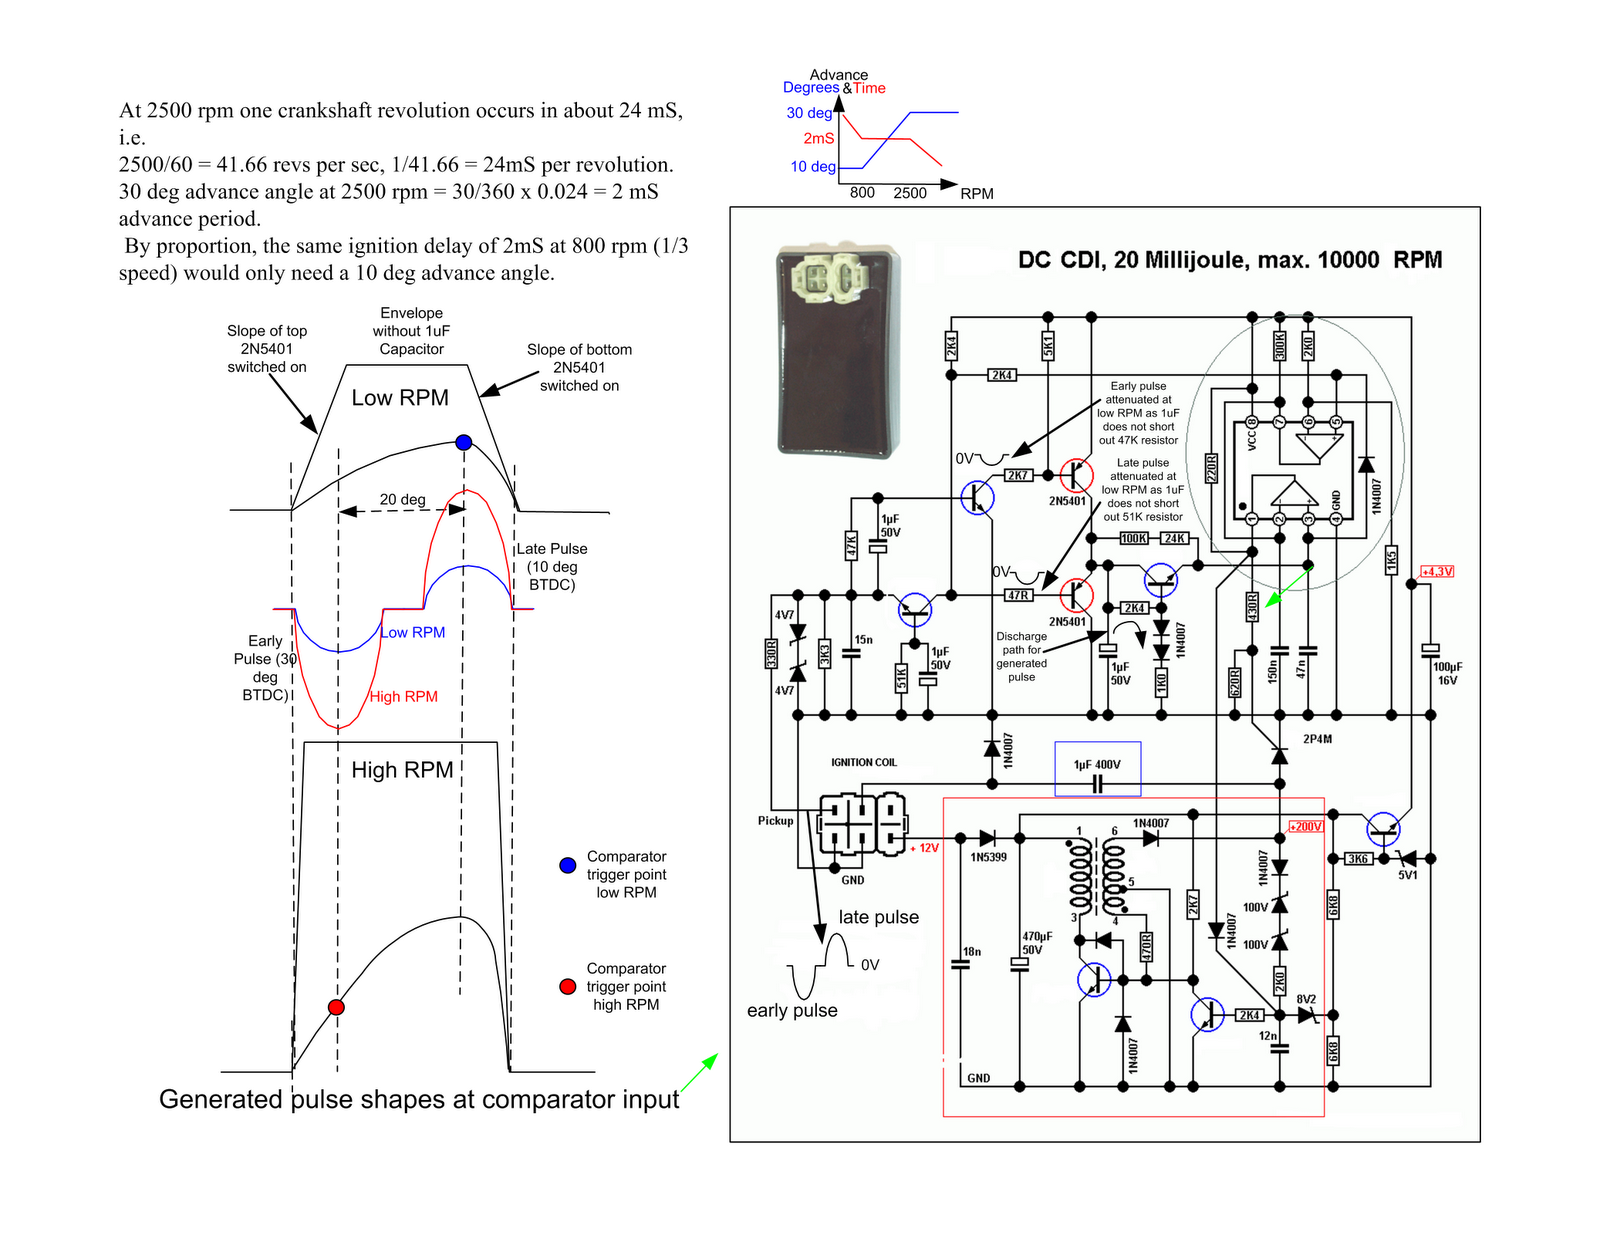 Yerf Dog 150cc Go Kart Wiring Diagram as well Post regulator Rectifier Diagram 623625 besides Wiring Diagram Cdi Mio also Dazon Raider Classic Wiring Diagram together with Mercury Relay Wiring Diagram. on dc cdi ignition wiring diagram